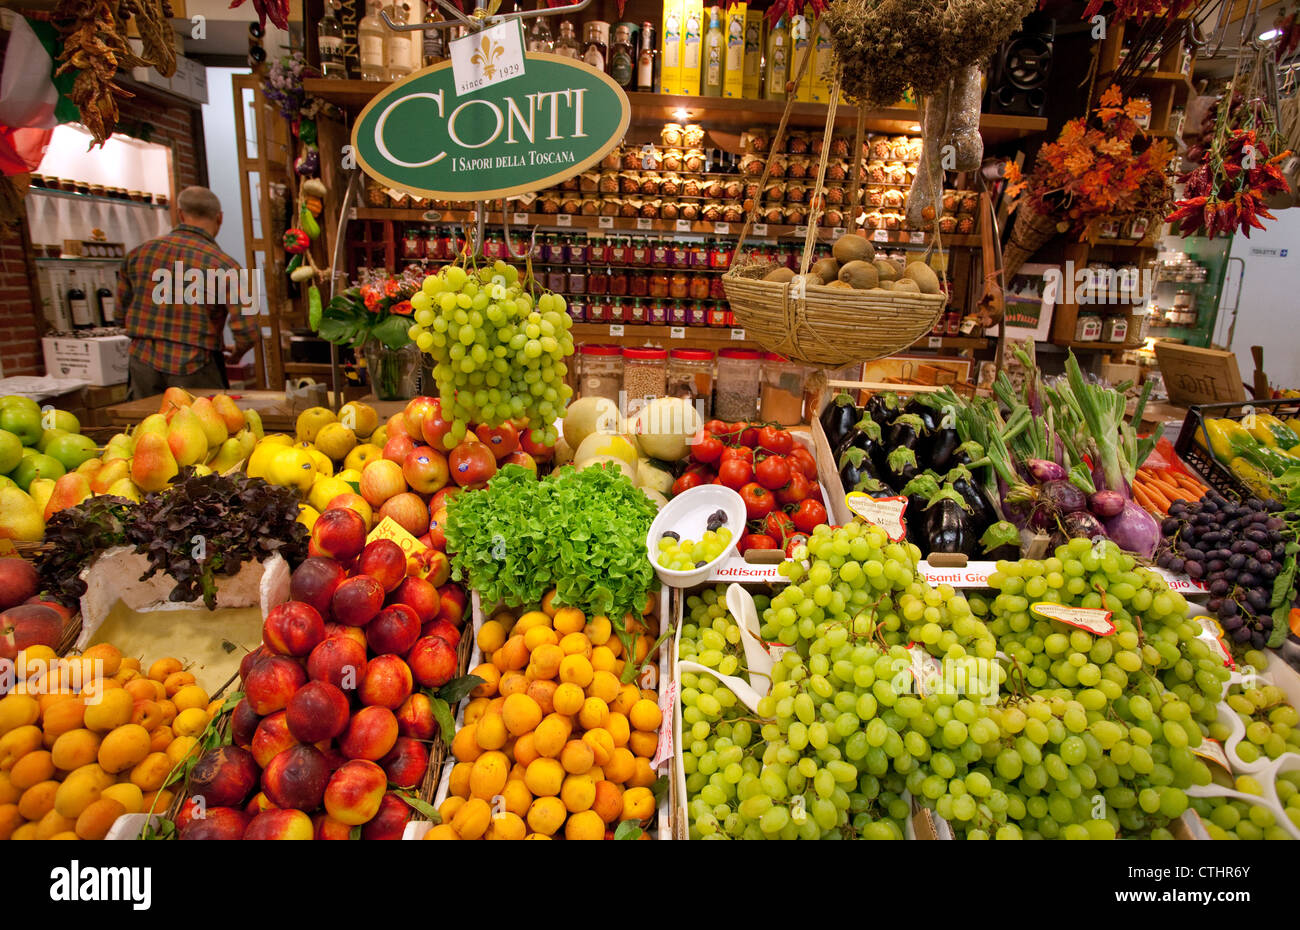 Fruit & vegetables on sale in Mercato Centrale, Florence, Italy - Stock Image